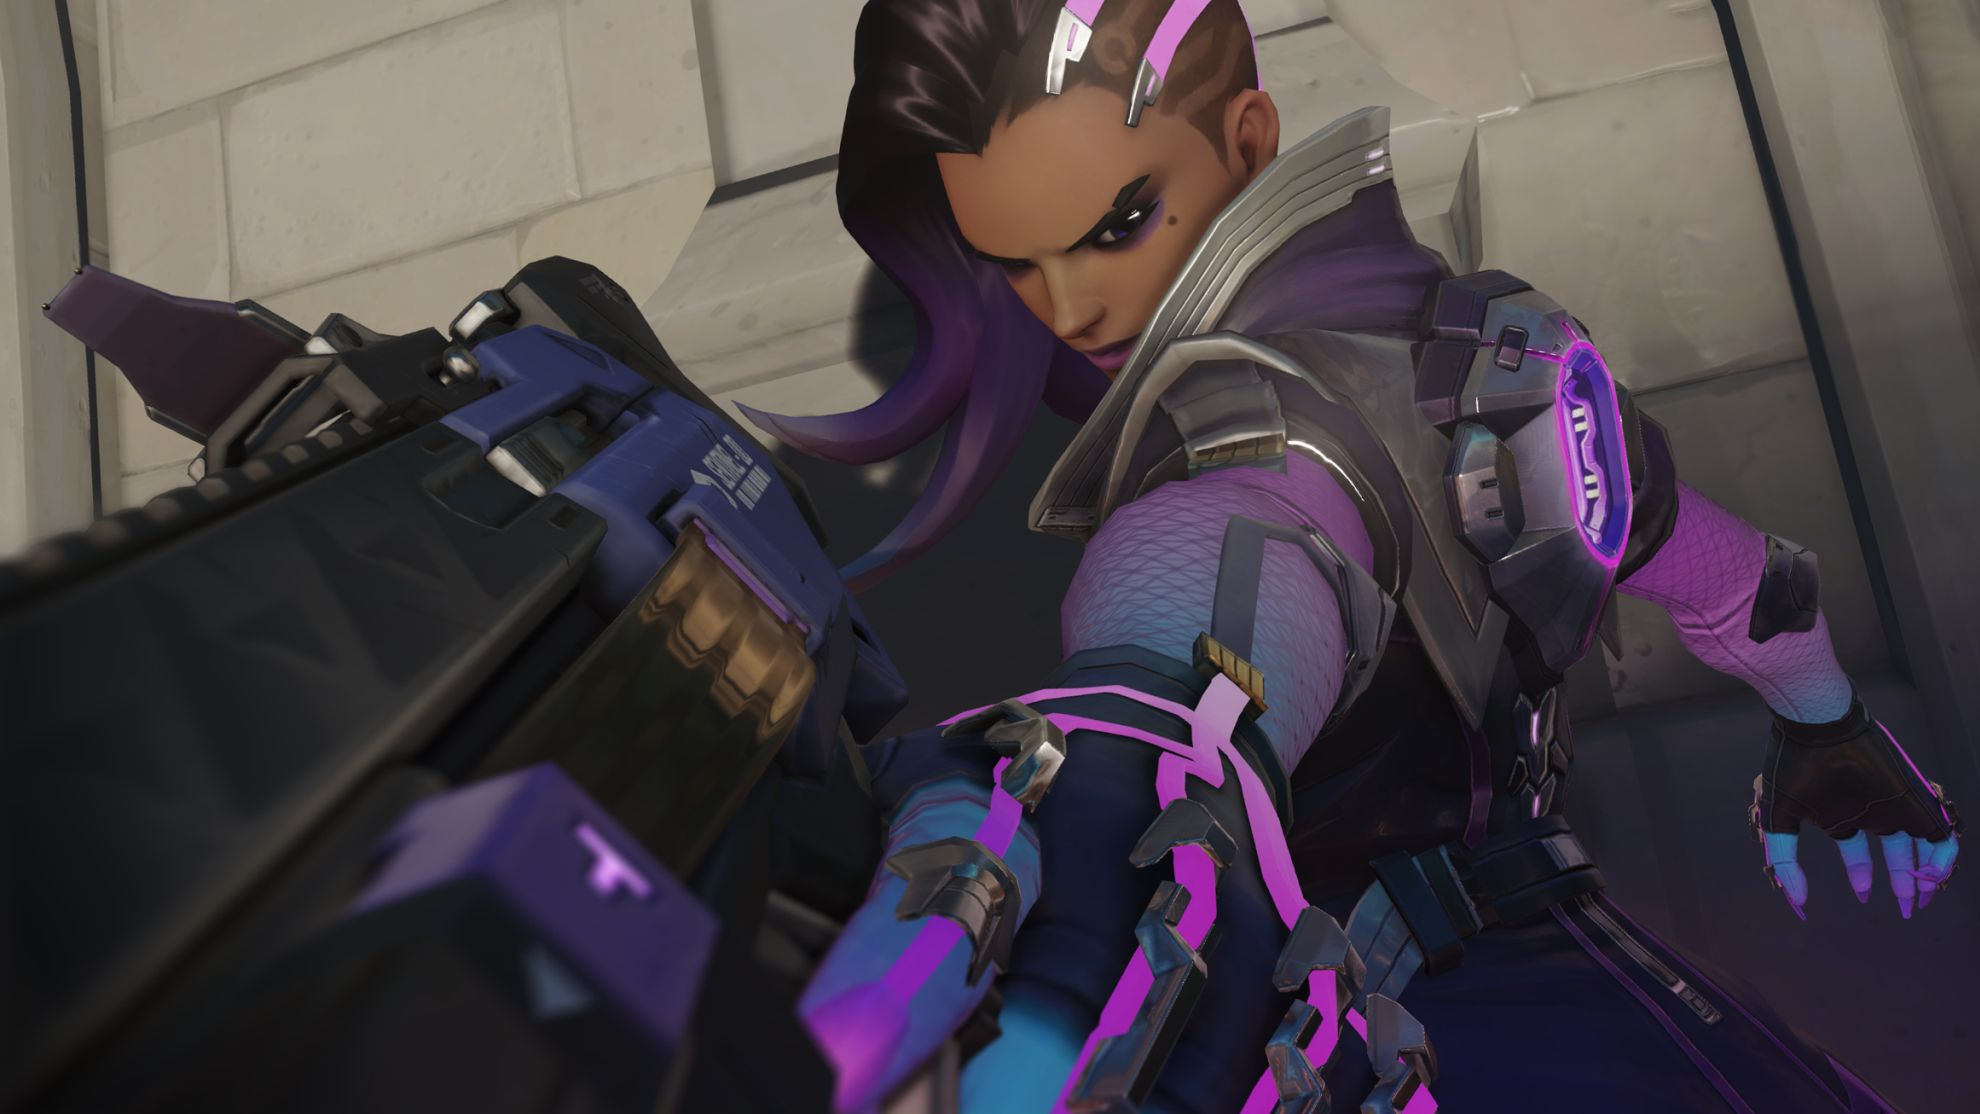 Overwatchs Sombra Is So Cool She Can Hack The End Of Round Play Of The Game VG247